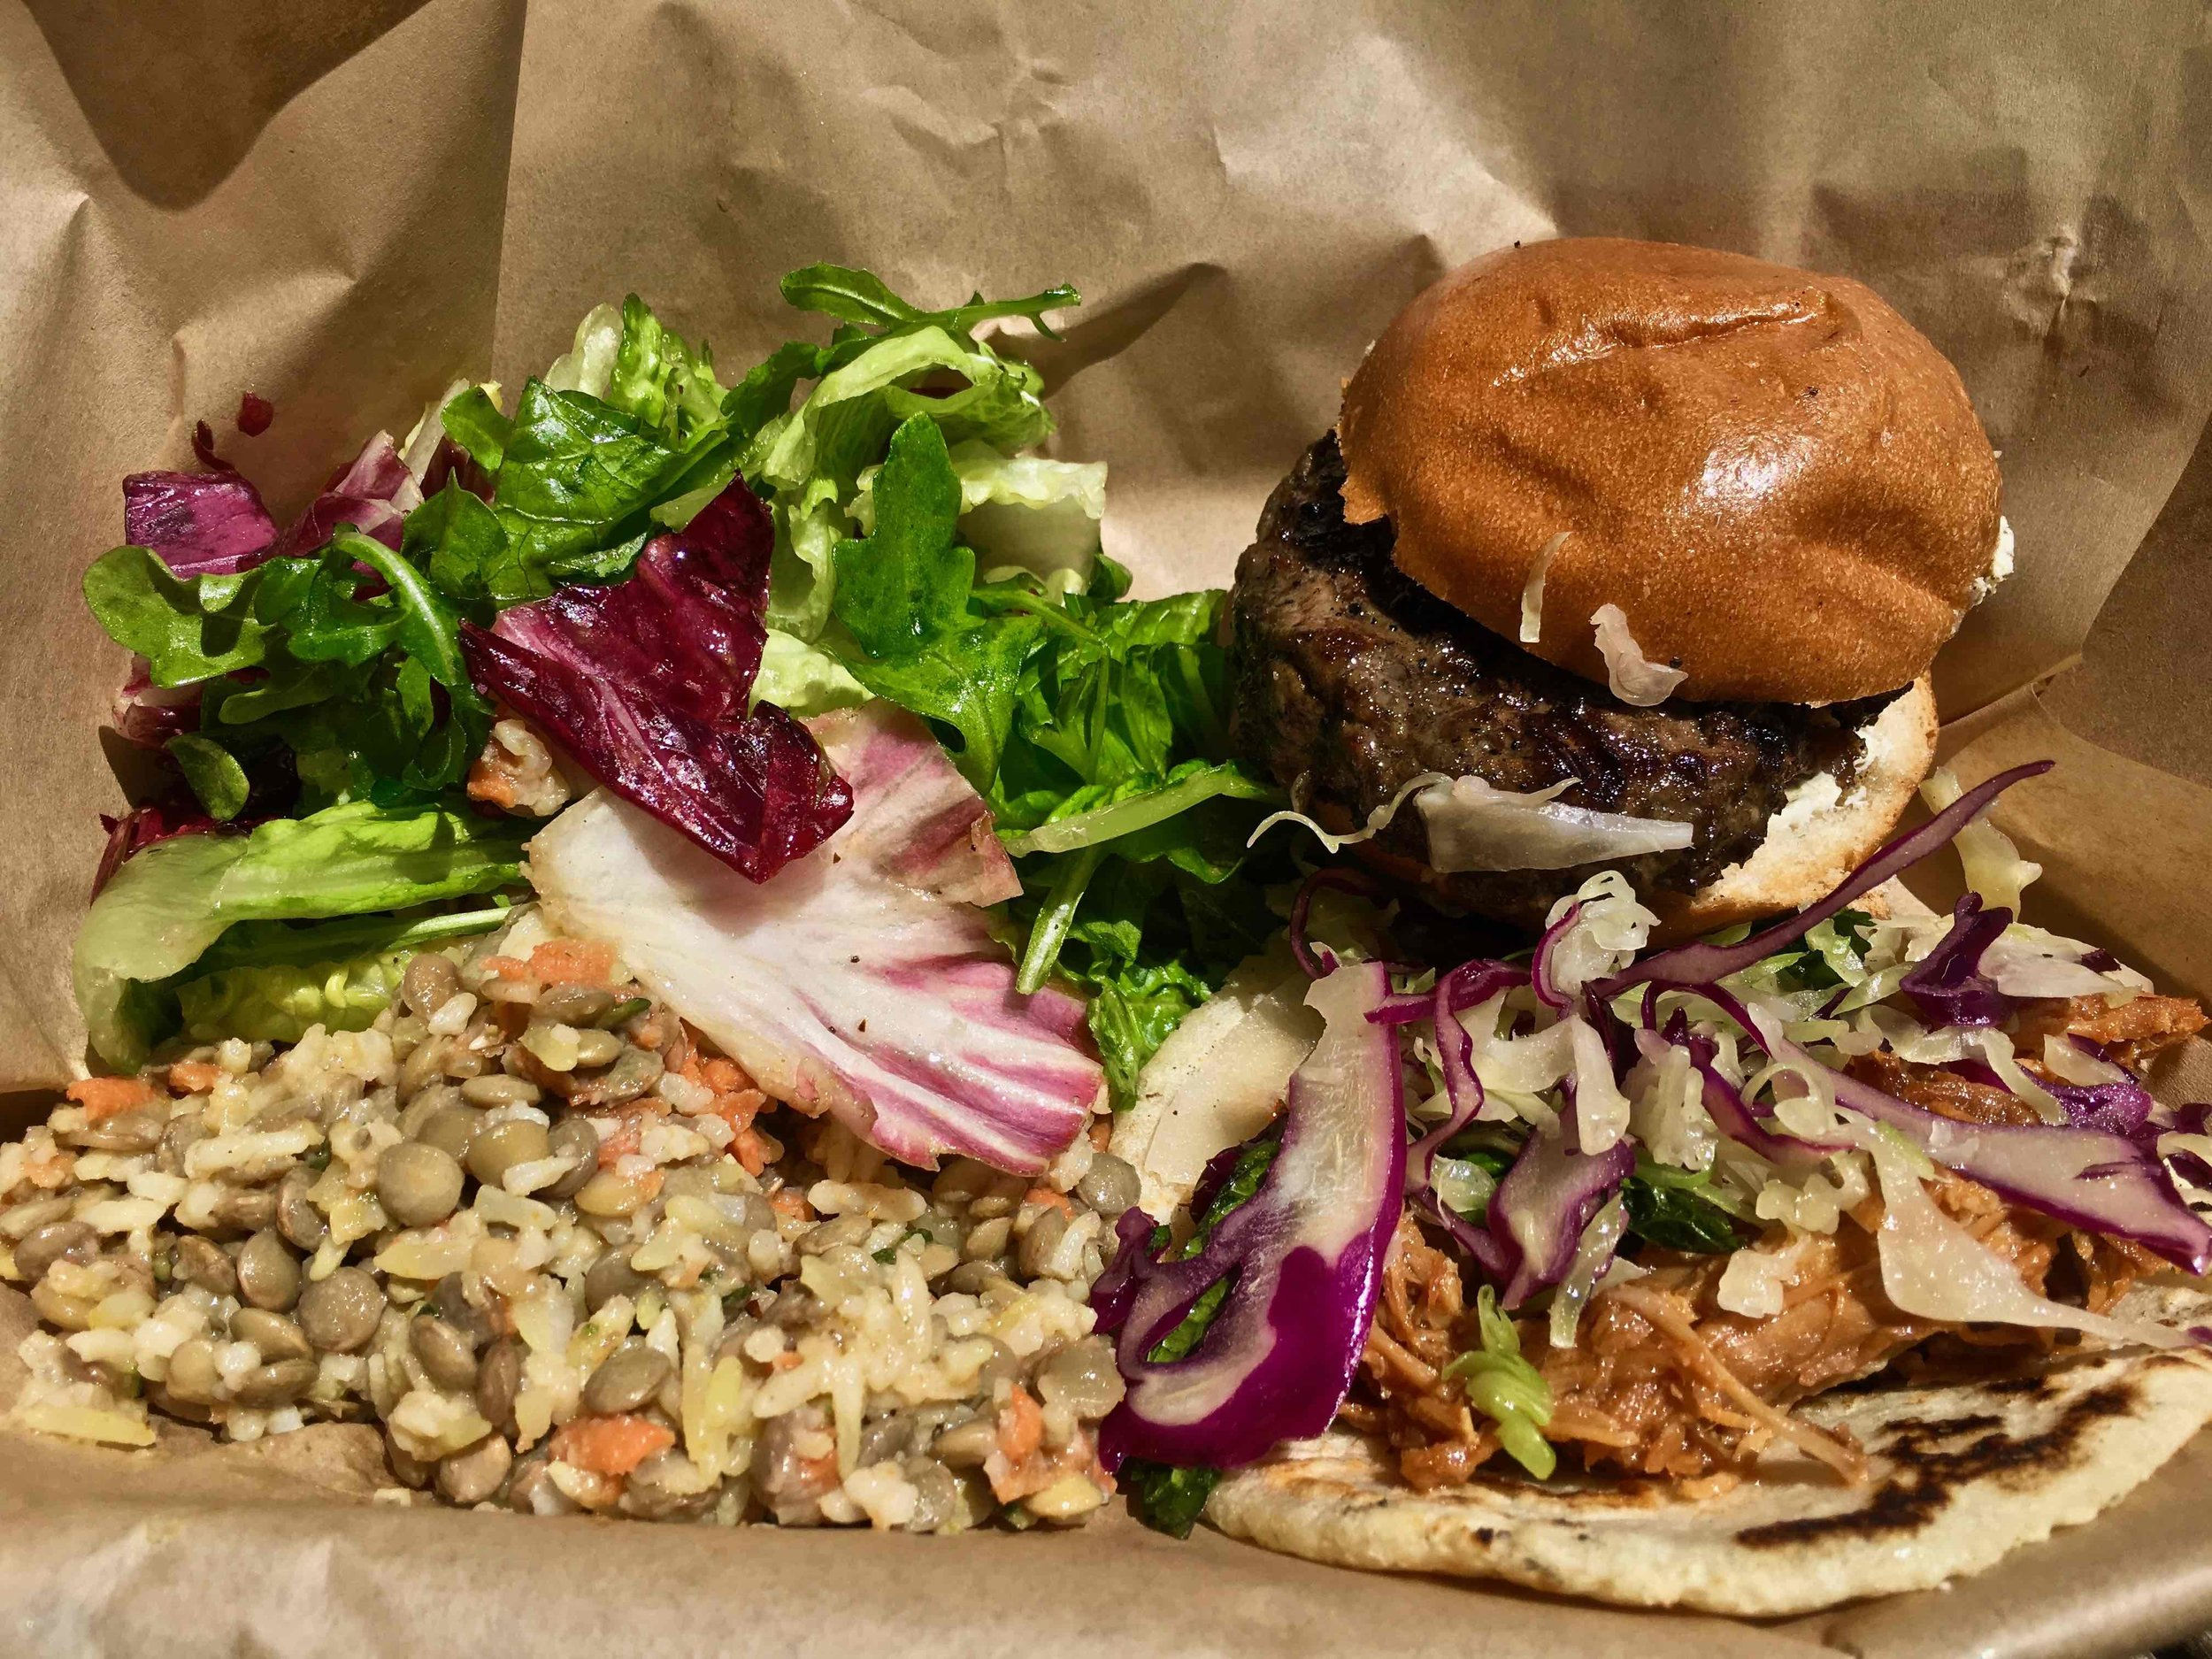 lamb slider with pulled pork taco and side salads